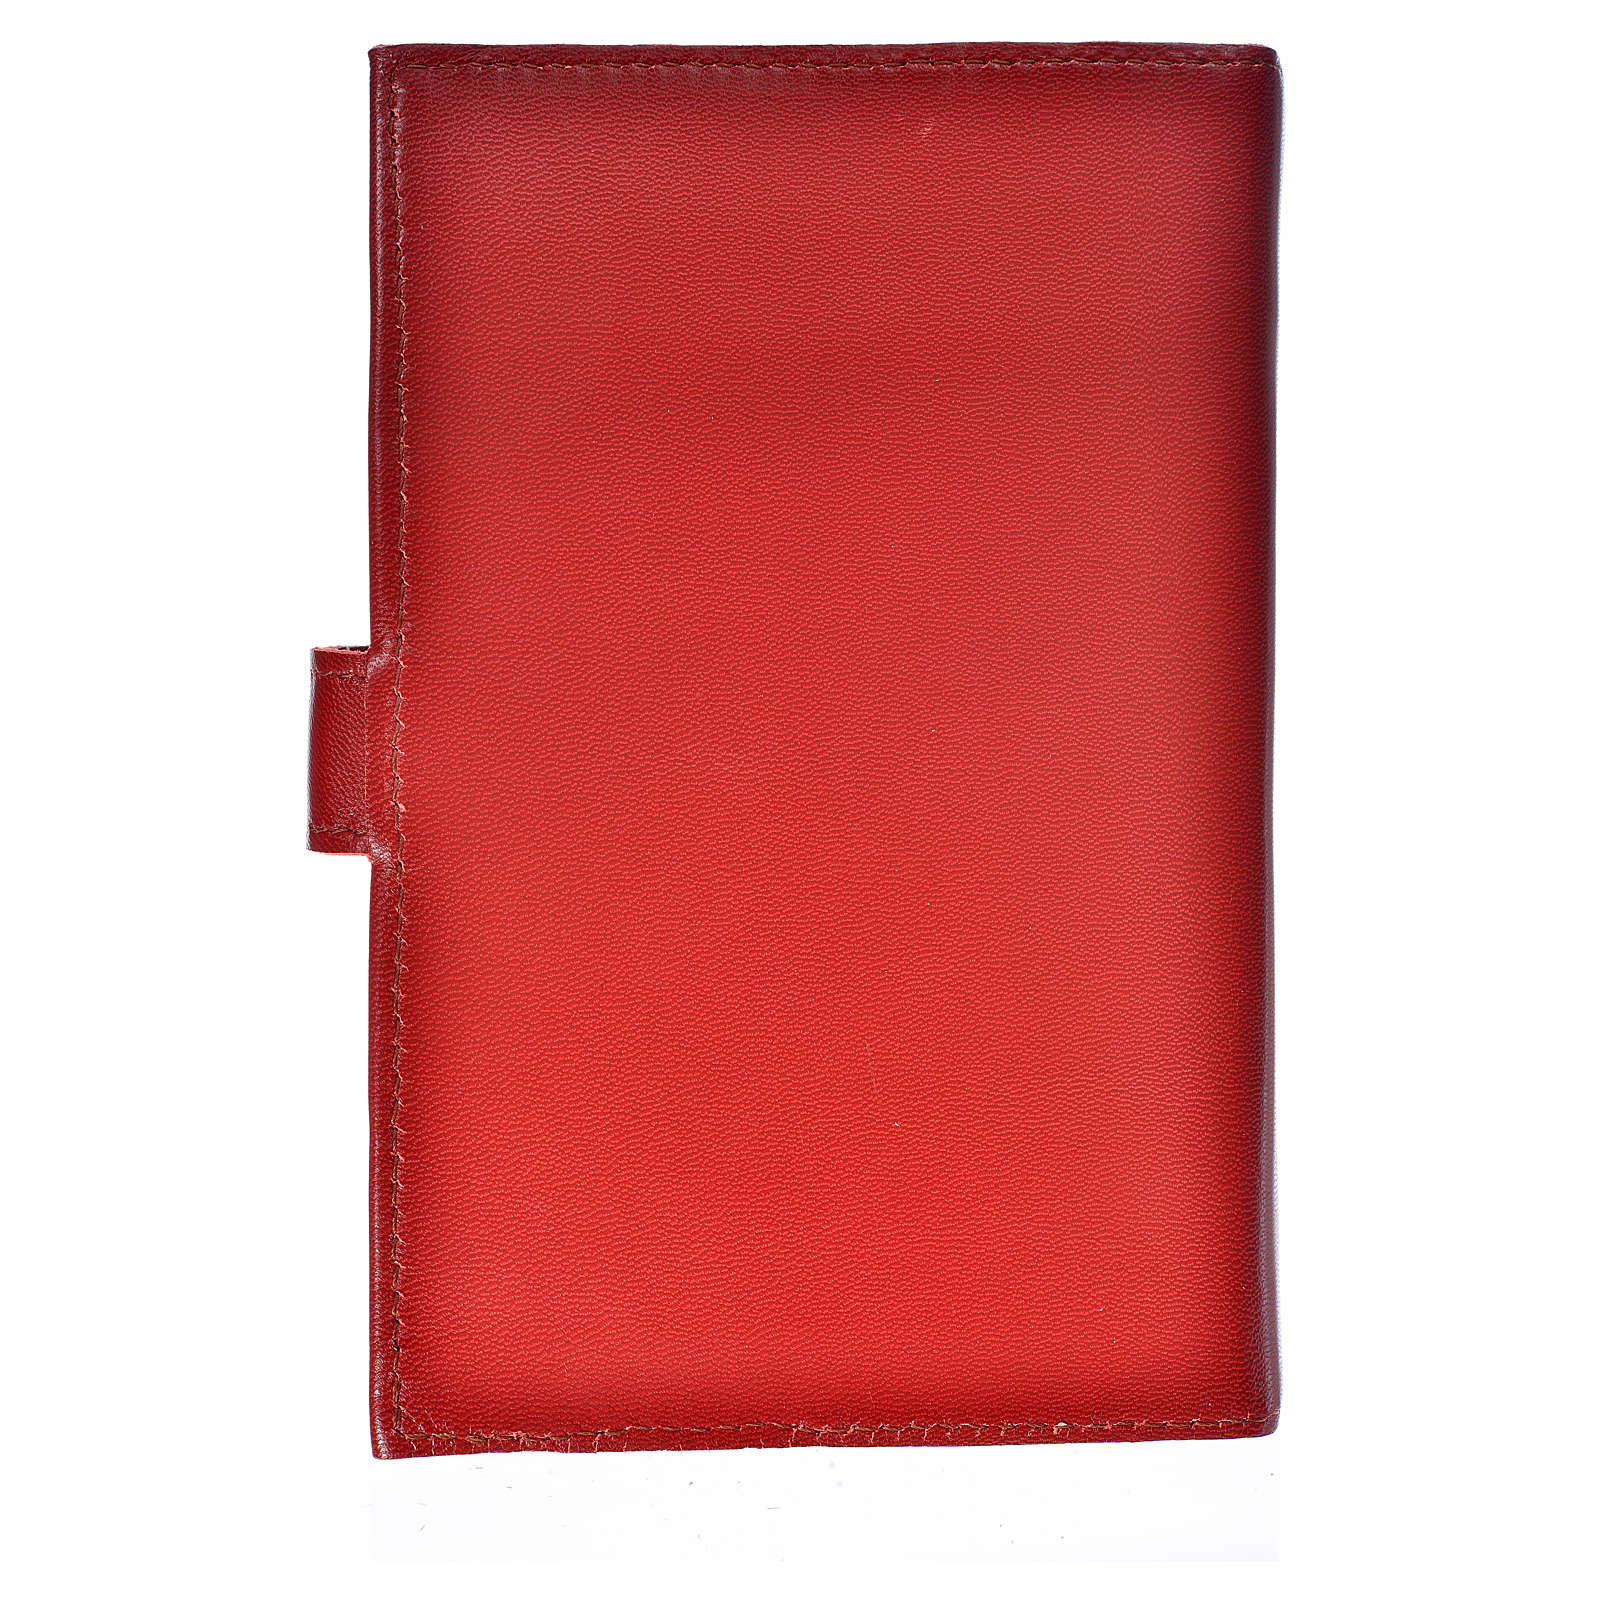 Bible cover reader edition, burgundy leather Holy Trinity 4